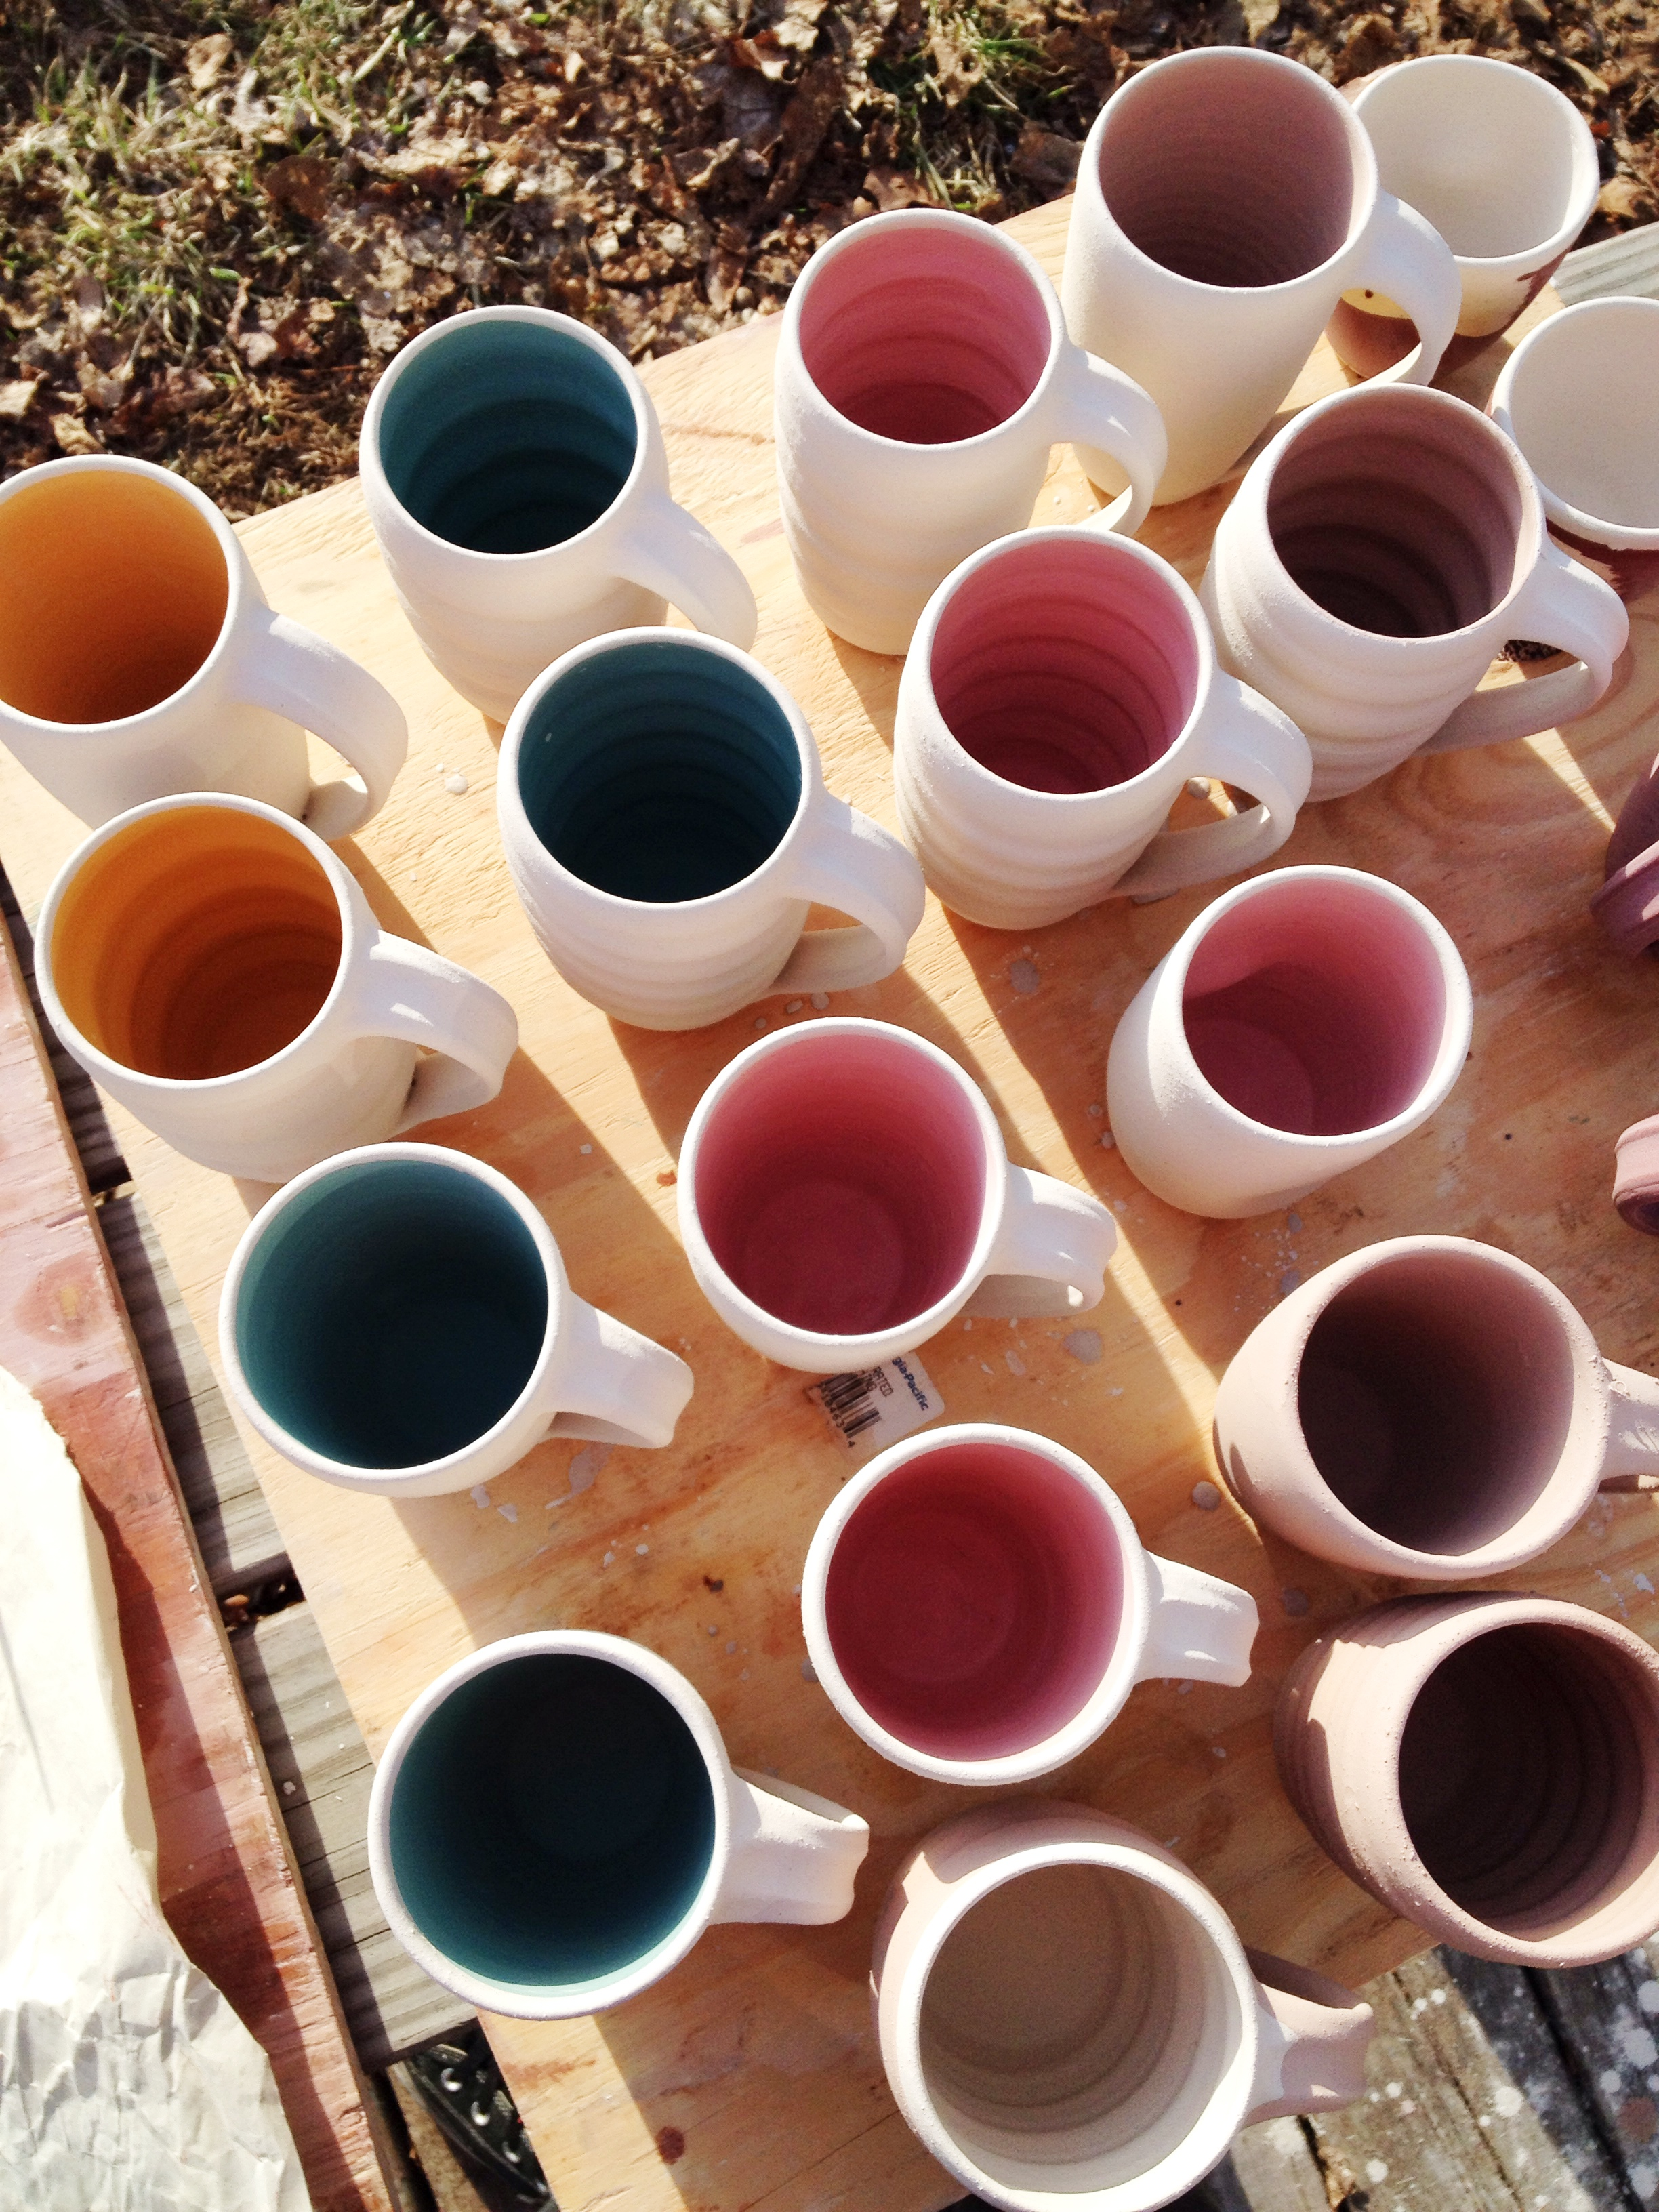 An assortment of the new smooth-sided mugs and the classic ripple mugs, glazed with bright pops of color on the interior and a soft cream on the exterior.